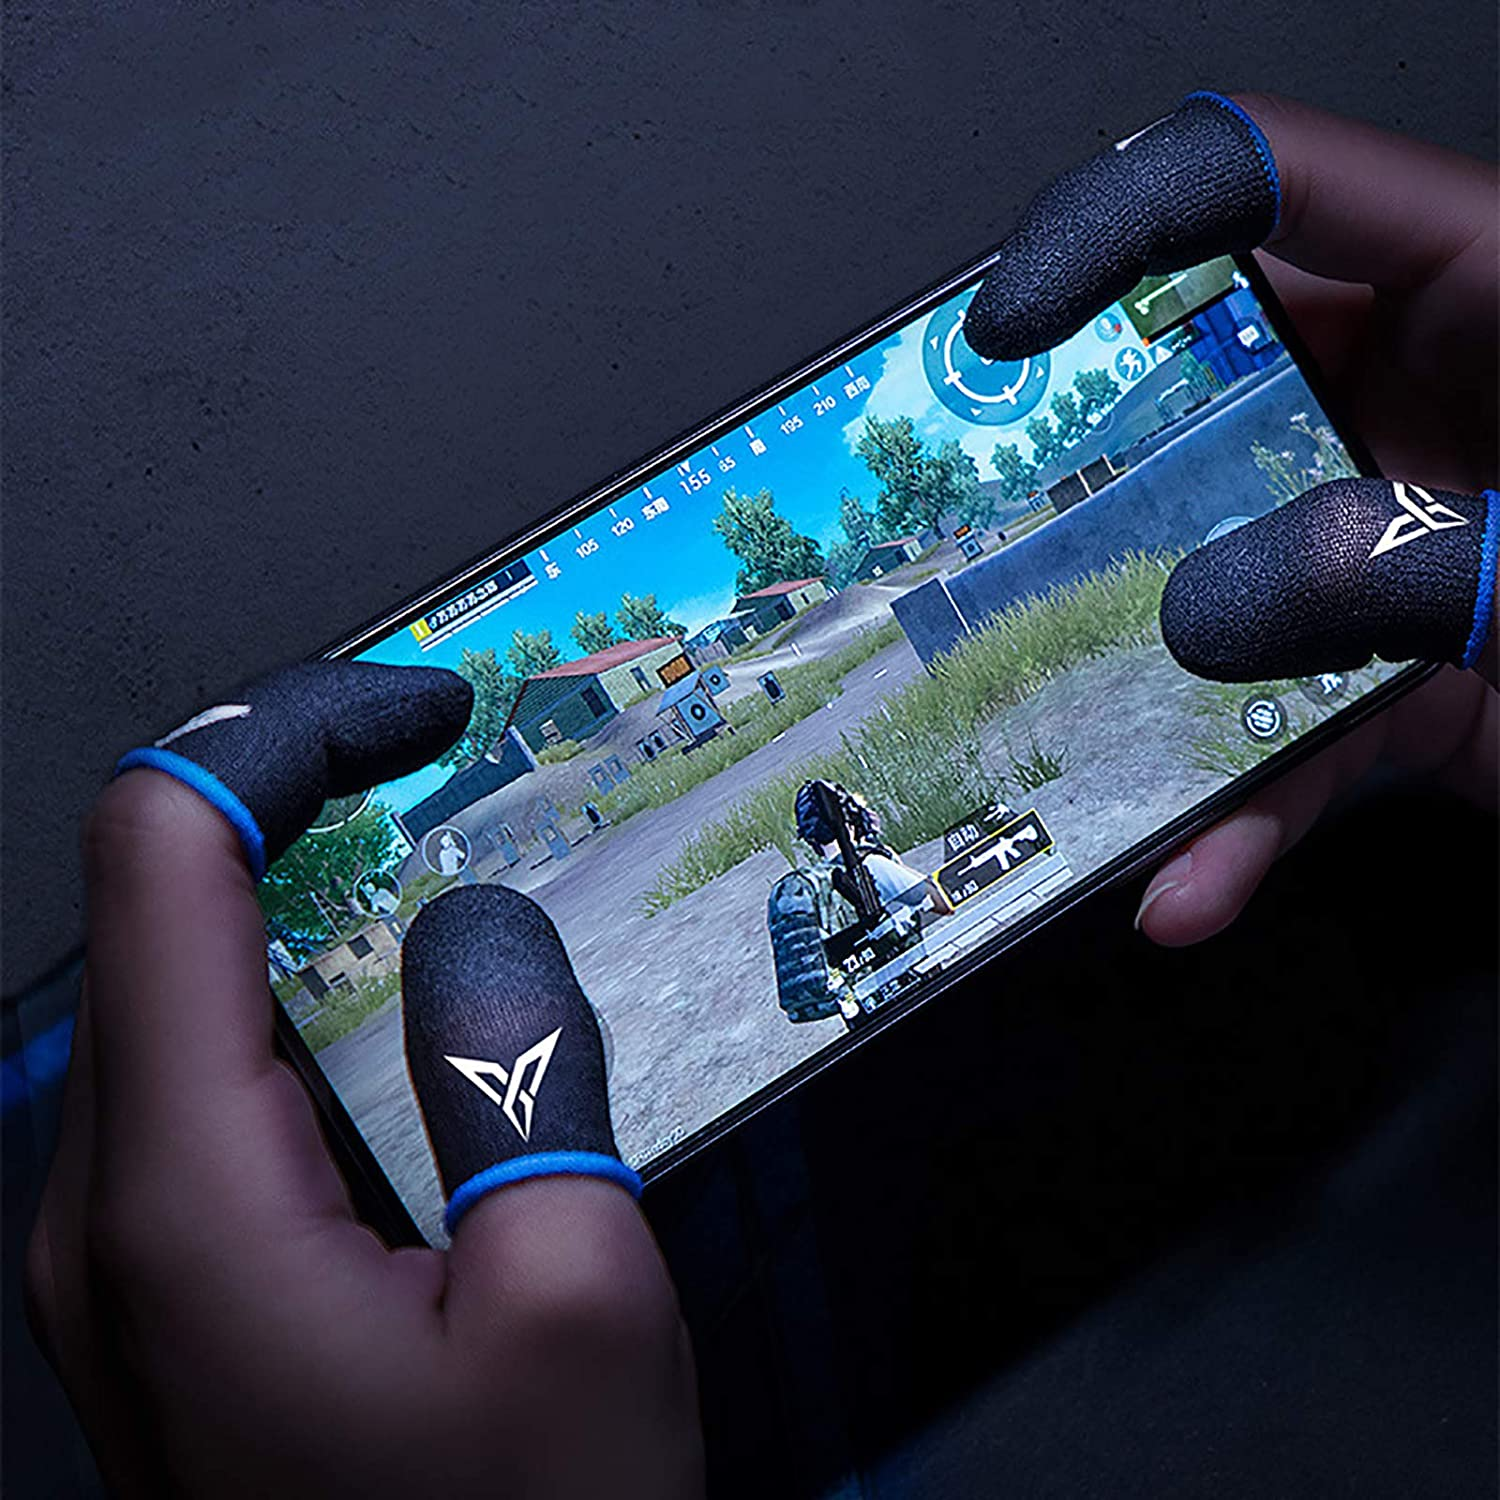 Mobile Game Non-Slip Finger Sleeves for PUBG Phone Games Touch Screen Finger Caps Gloves Sweat-Proof Thumb Cover Mobile Phone Accessories Blue-Black 1 Pair